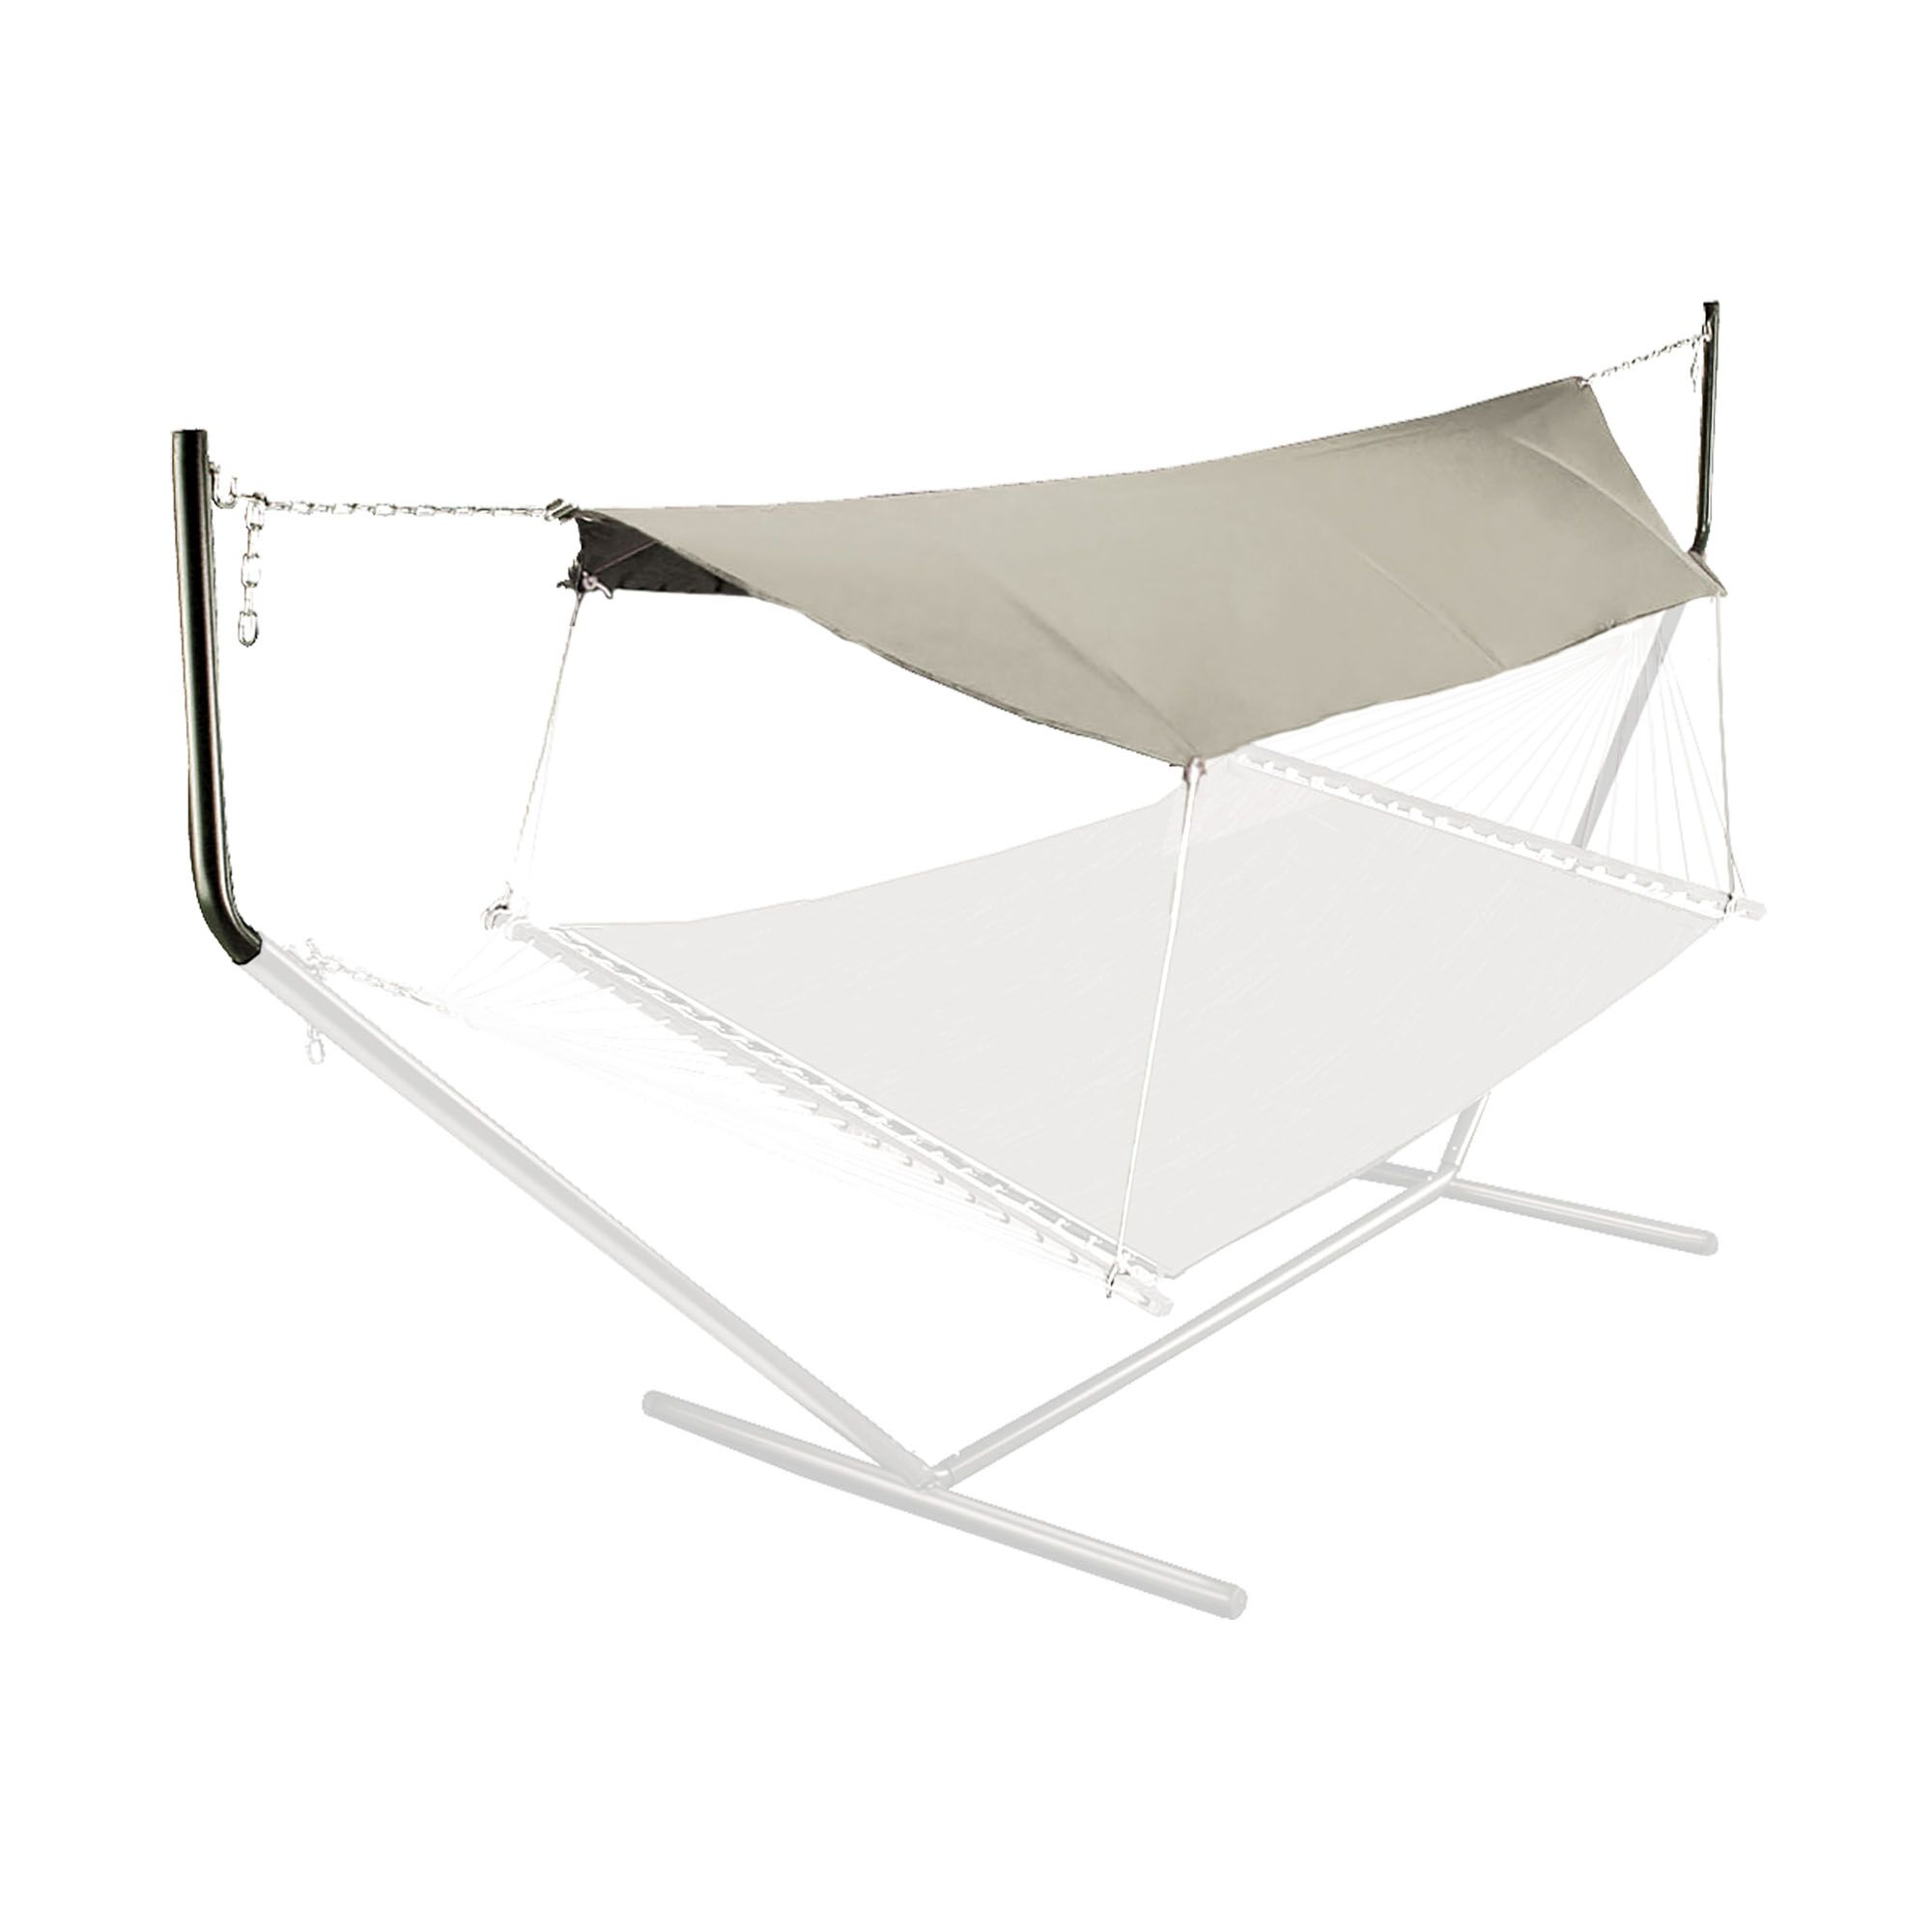 Edford Hammock Canopy Color: Forest Green